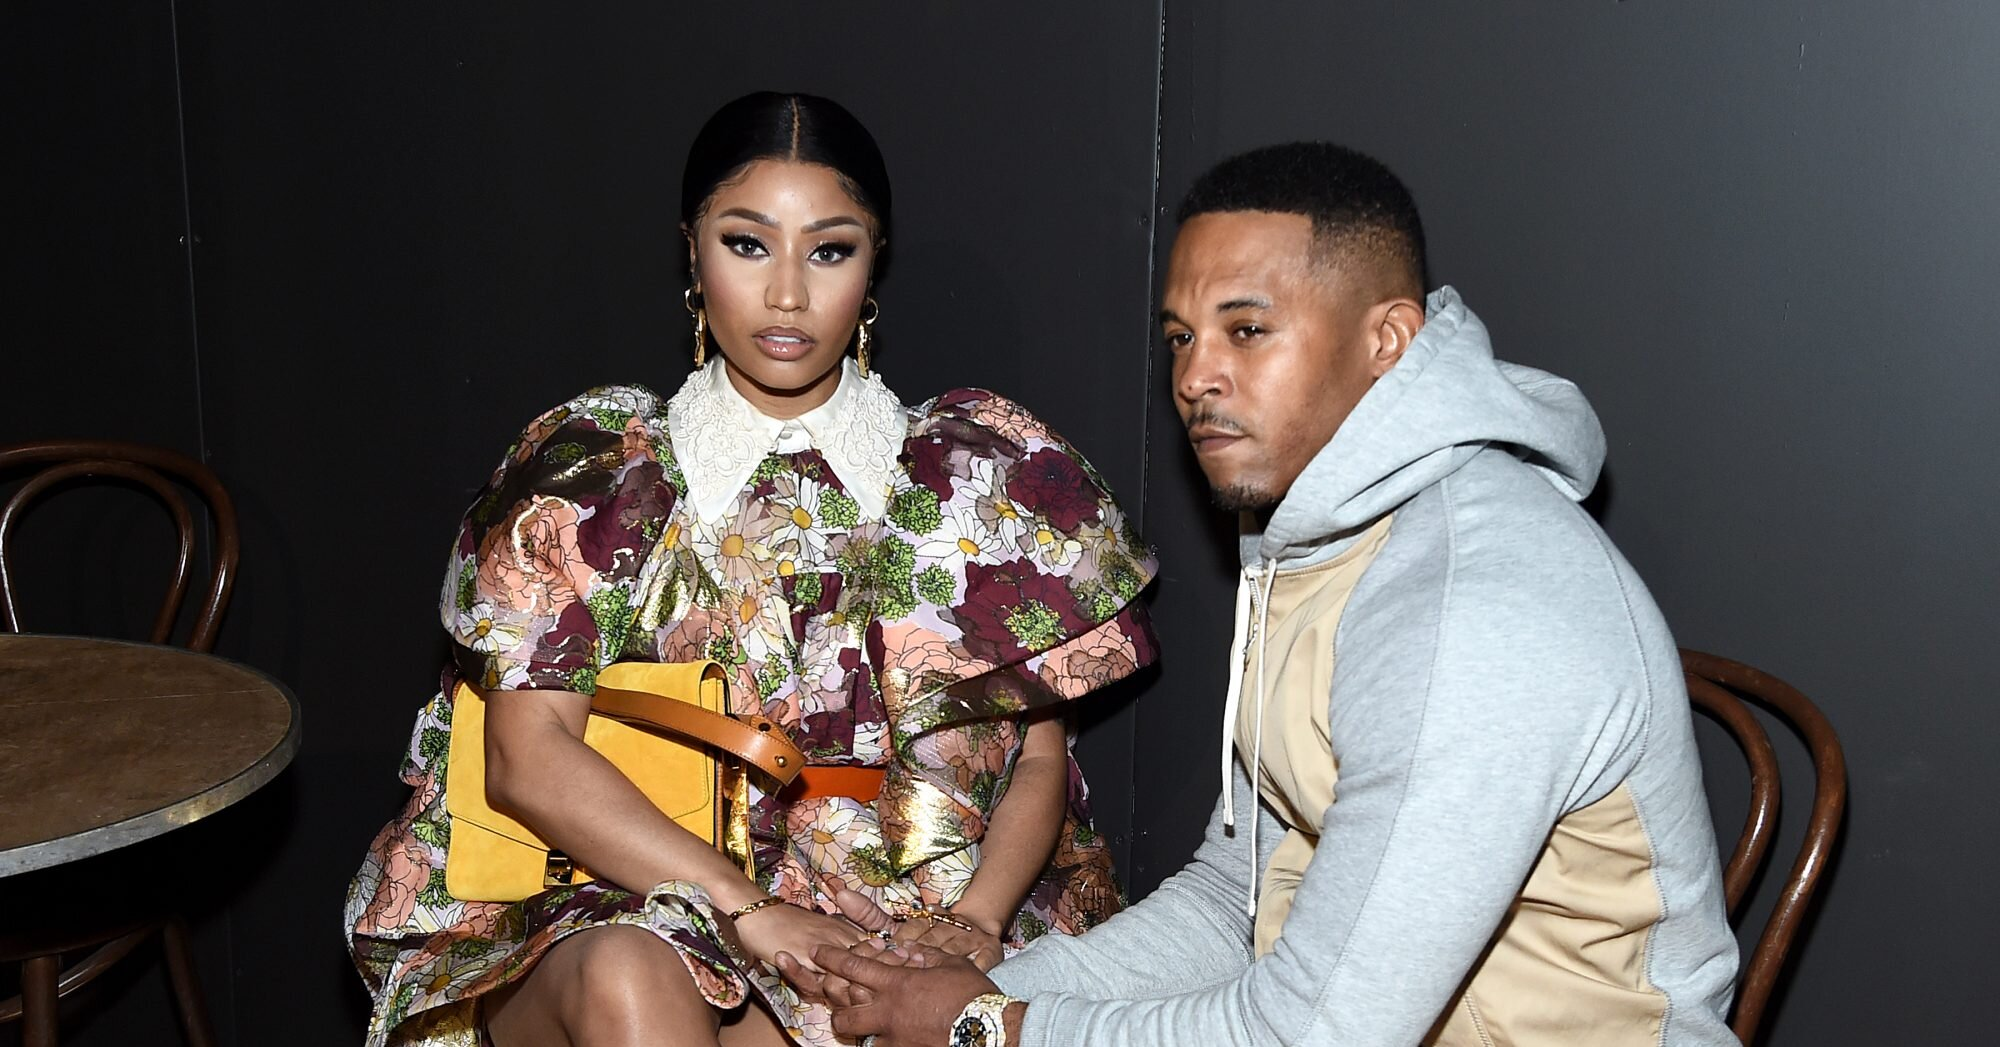 Nicki Minaj Is Pregnant and Expecting Her First Child with Husband Kenneth Petty